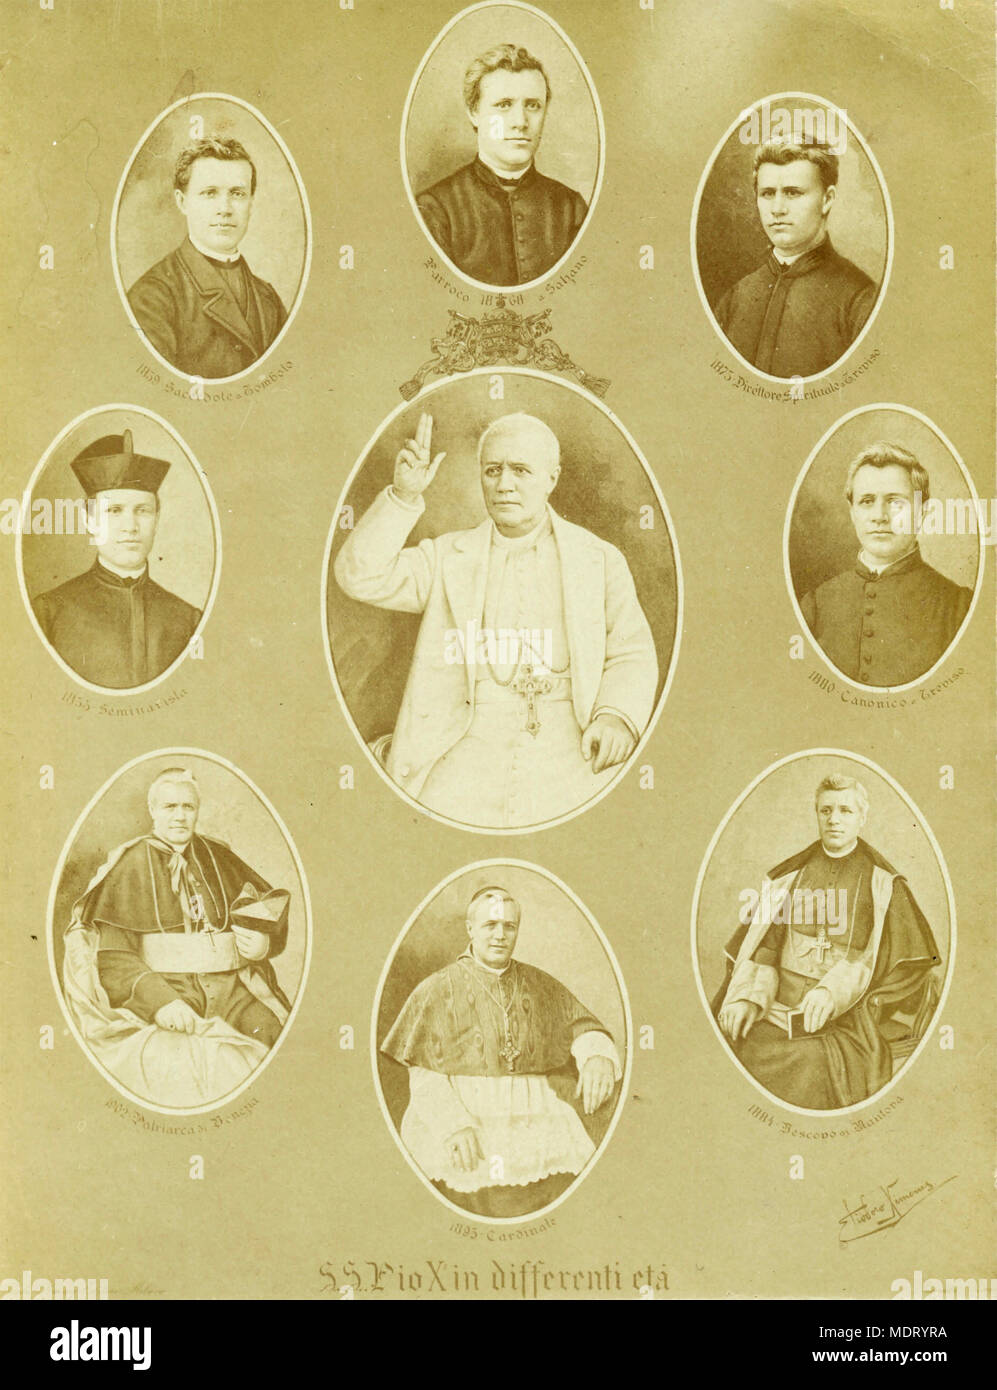 Portraits of Pope Pius X in different ages - Stock Image